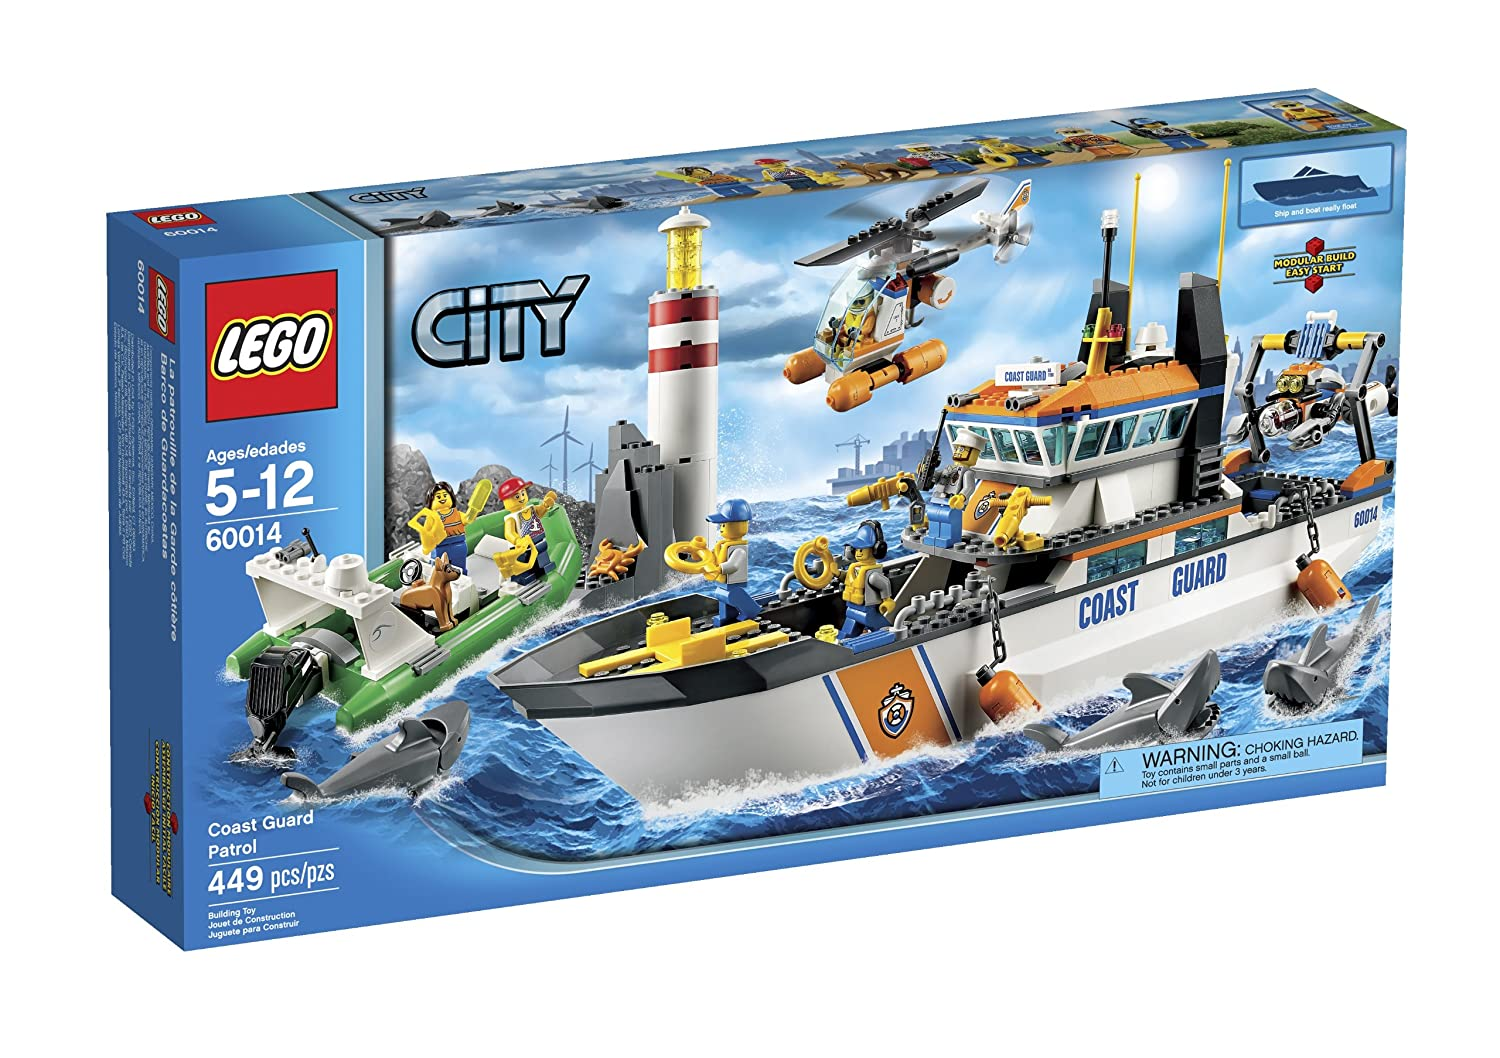 LEGO CITY COAST GUARD PATROL 60014 6024987